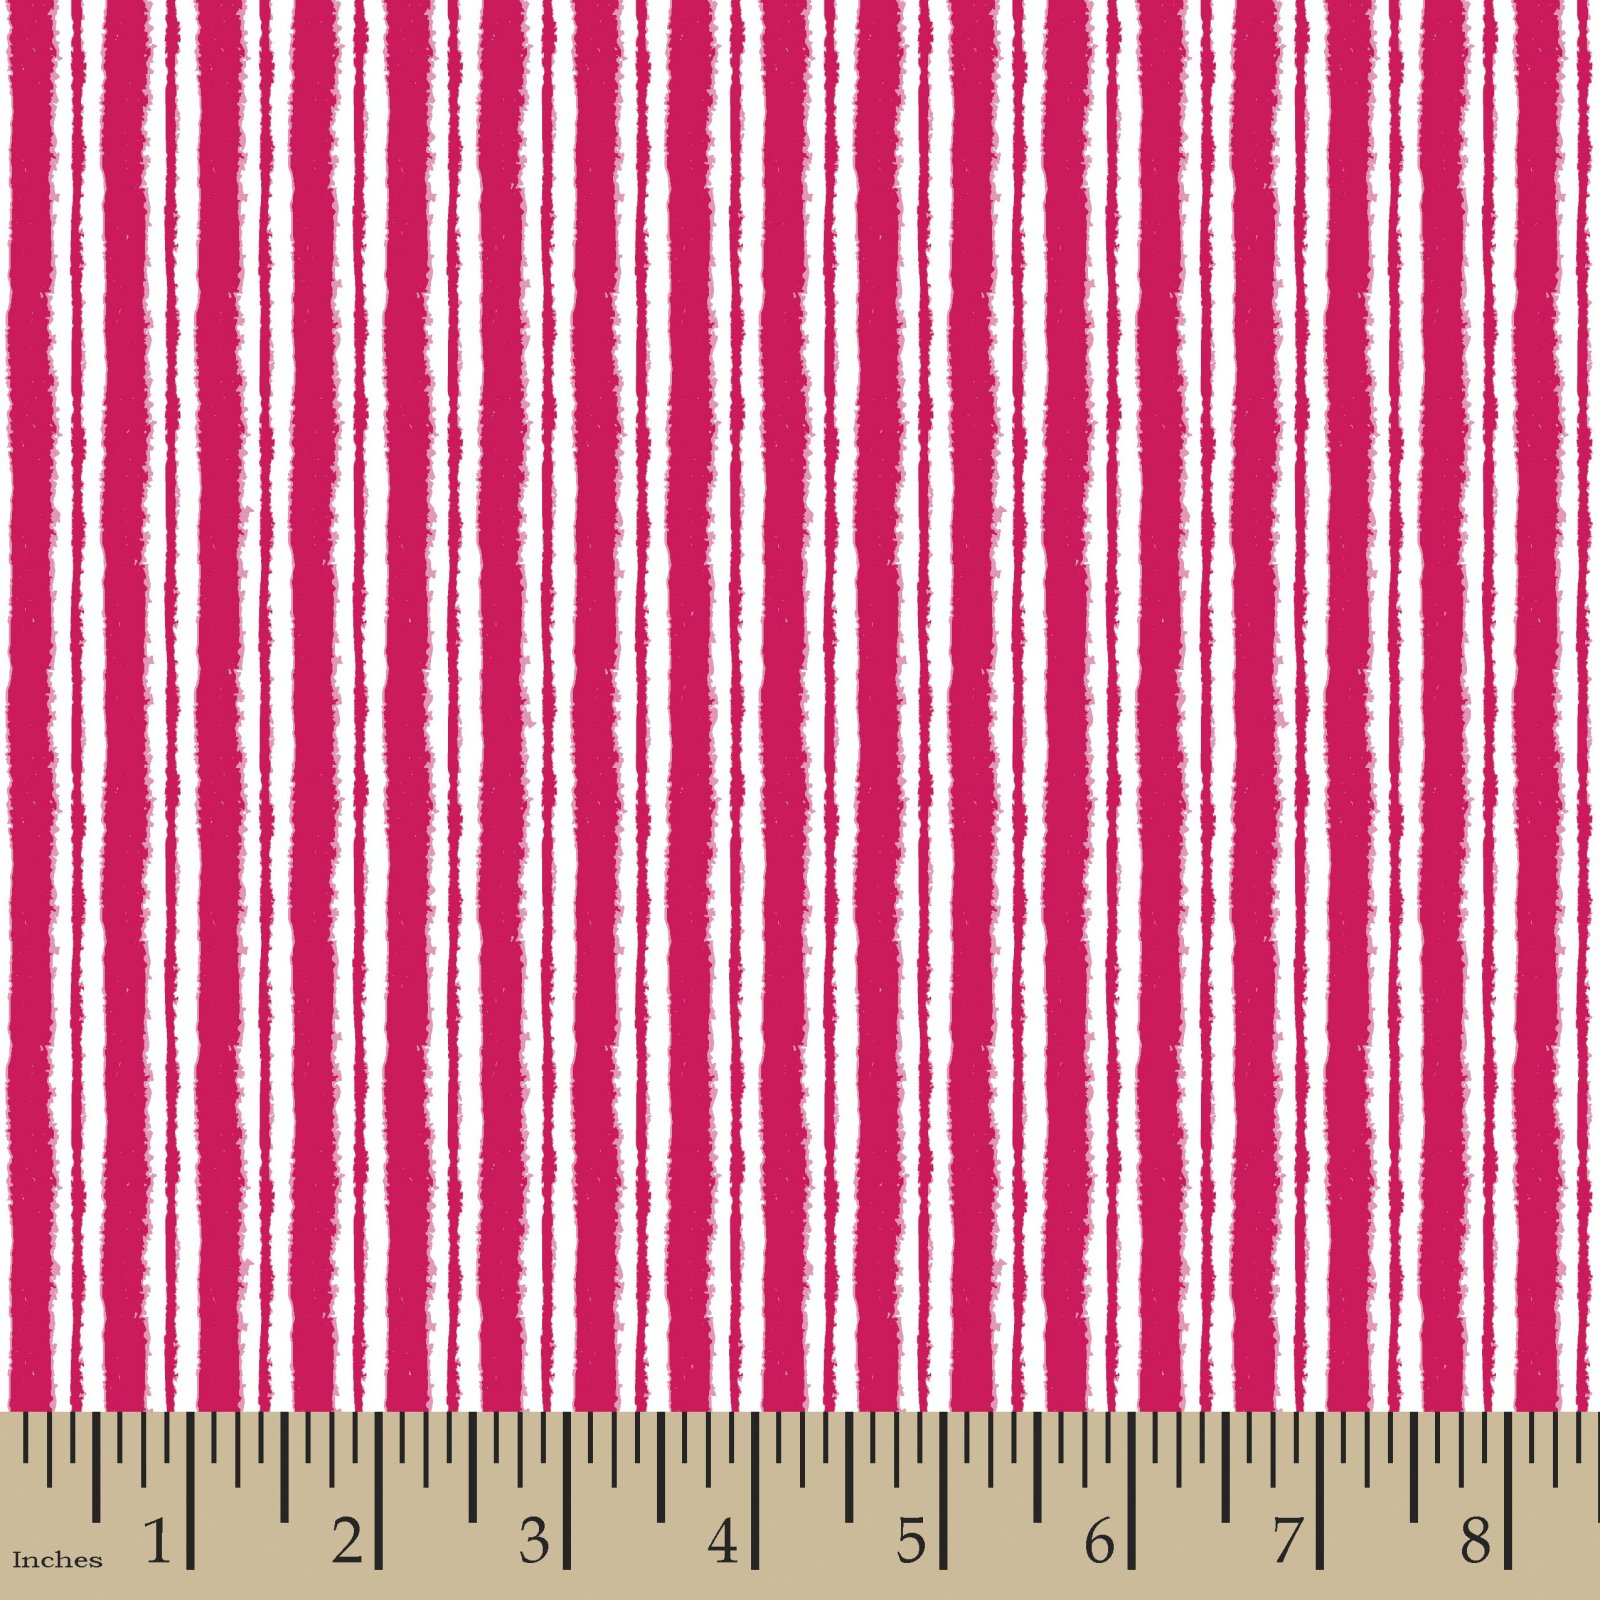 Dry Brushed Stripe Pink